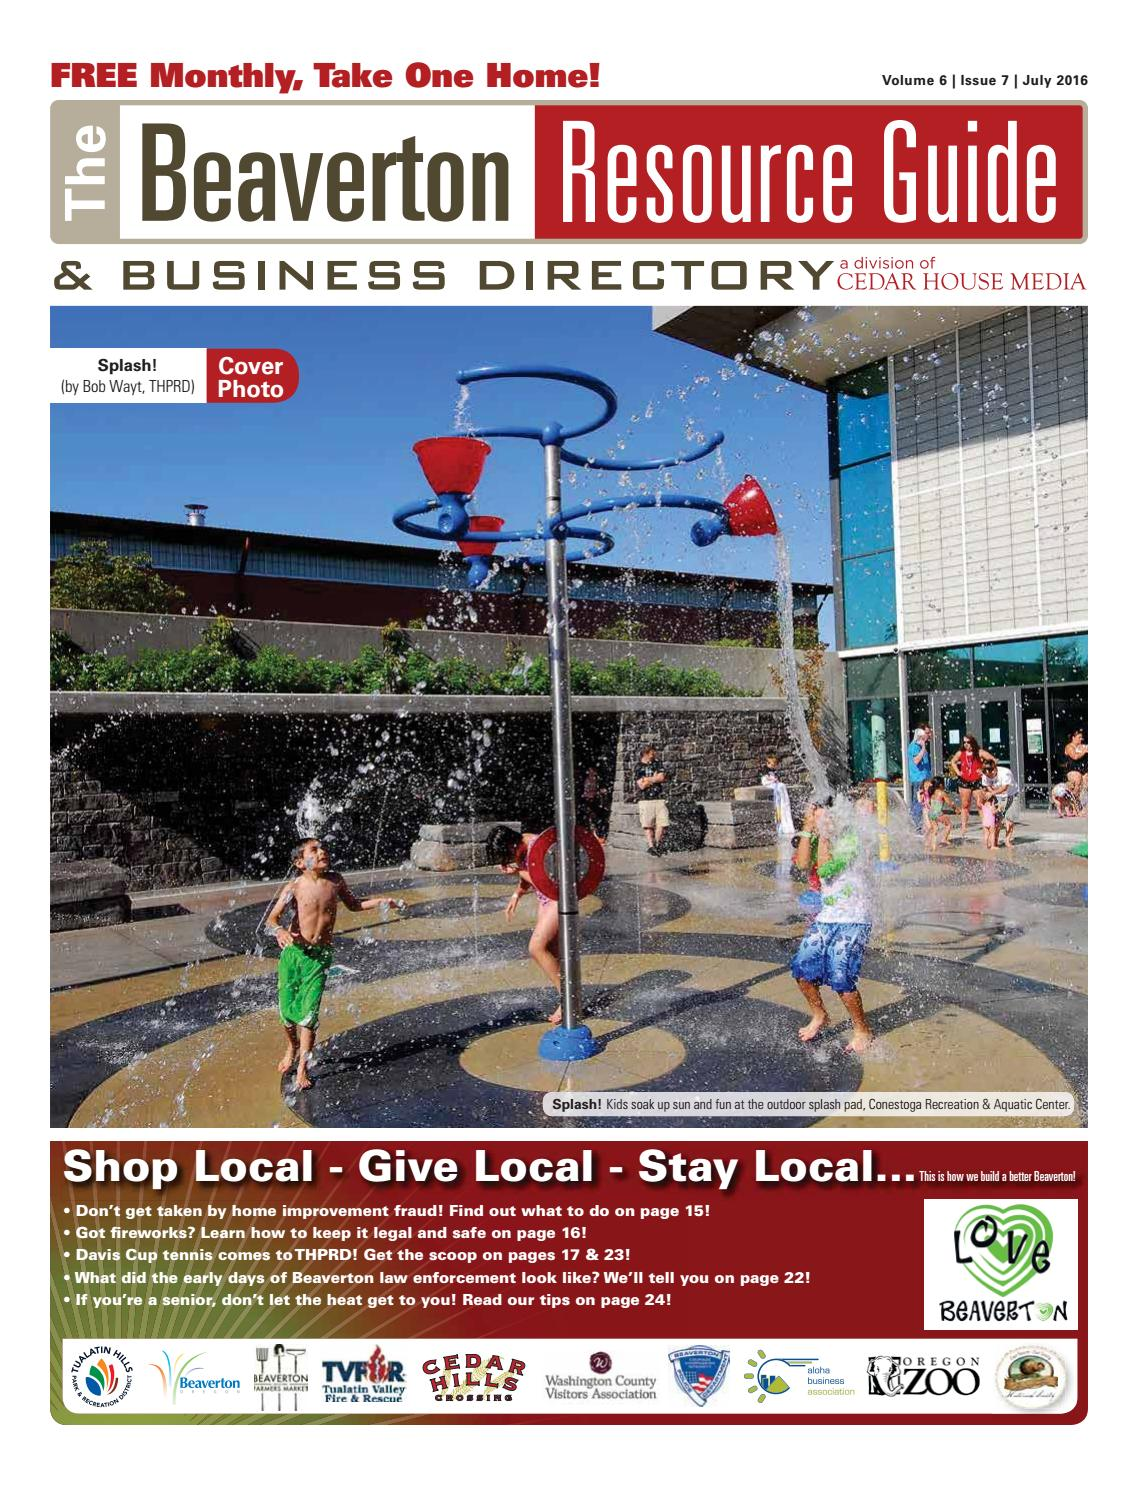 Brg July 2016 By Beaverton Resource Guide Issuu Full Body Workouts On Pinterest Melissa Bender Circuit And